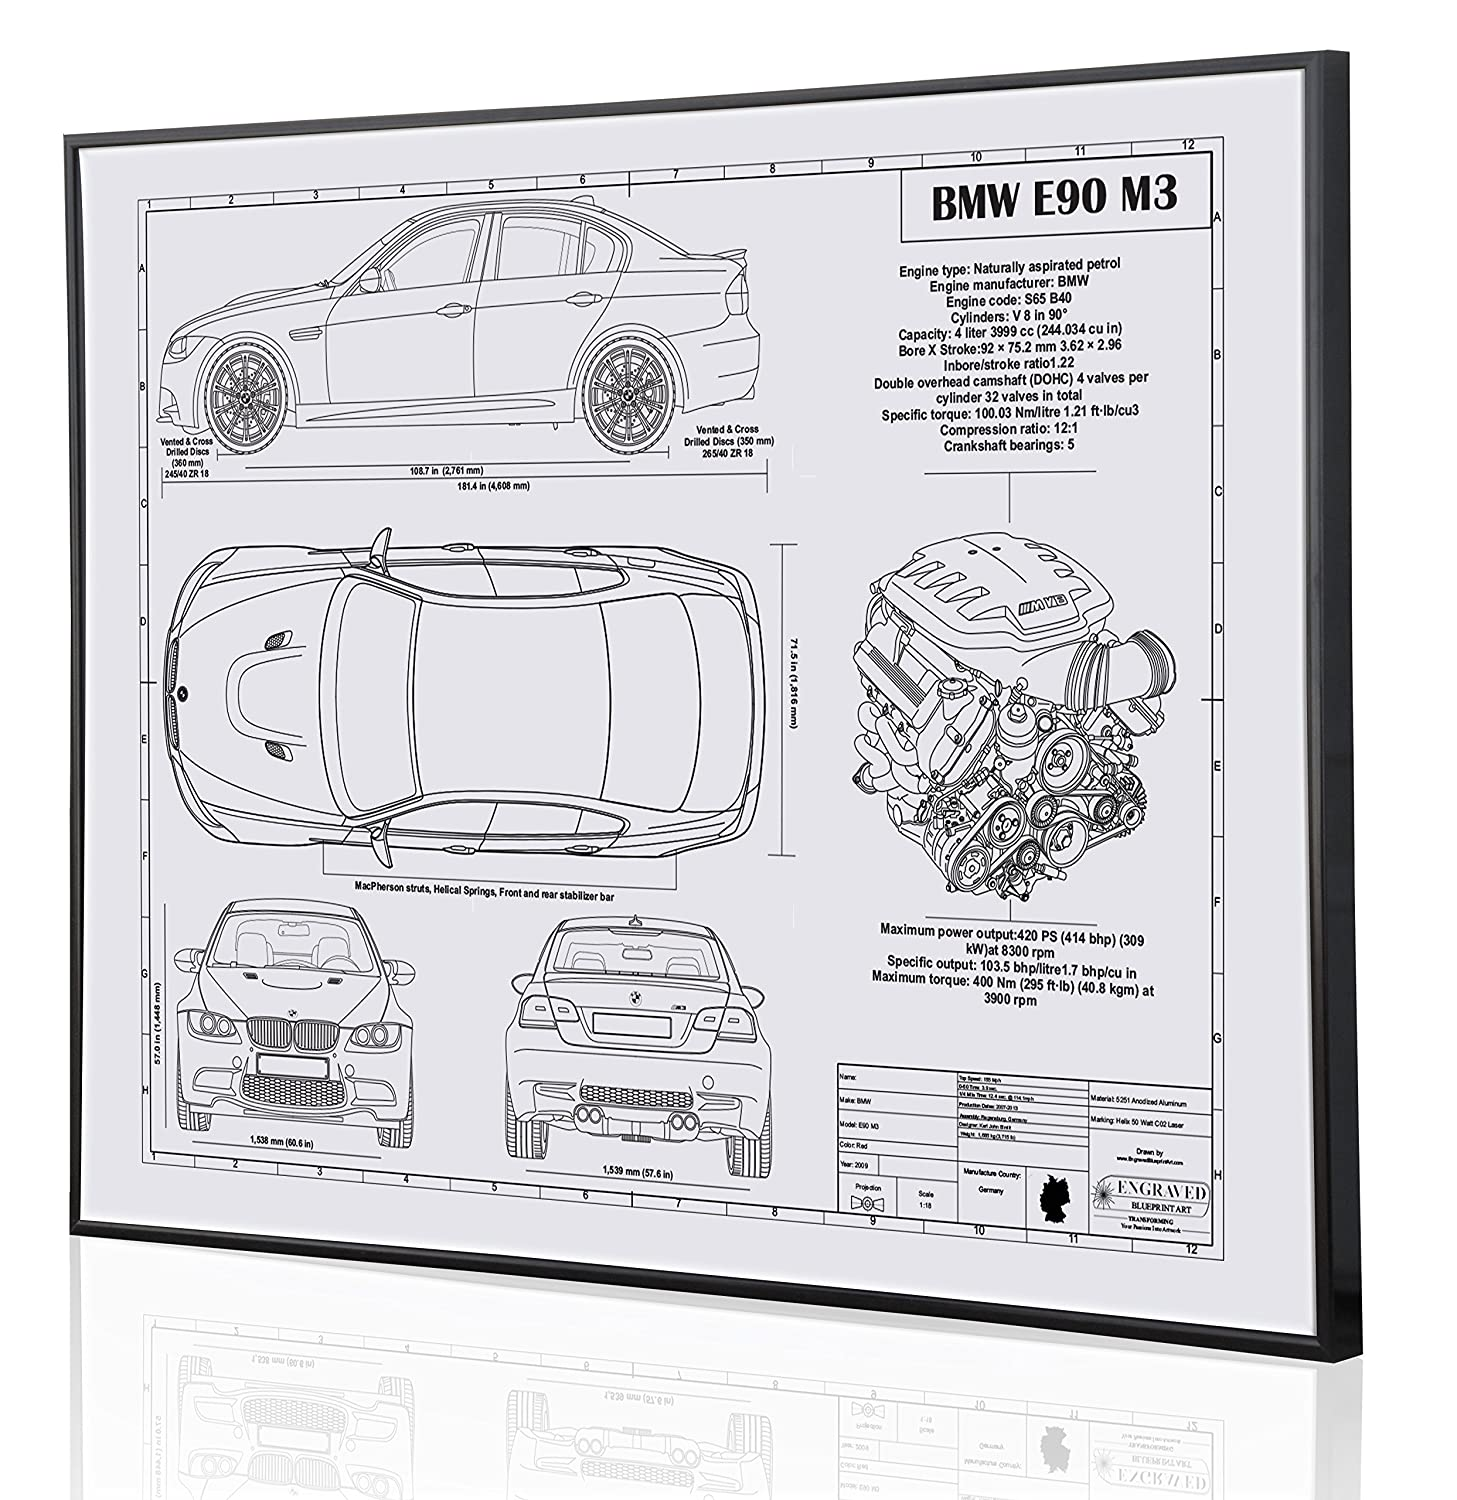 Amazon bmw e90 m3 blueprint artwork laser marked personalized amazon bmw e90 m3 blueprint artwork laser marked personalized the perfect bmw gifts handmade malvernweather Image collections